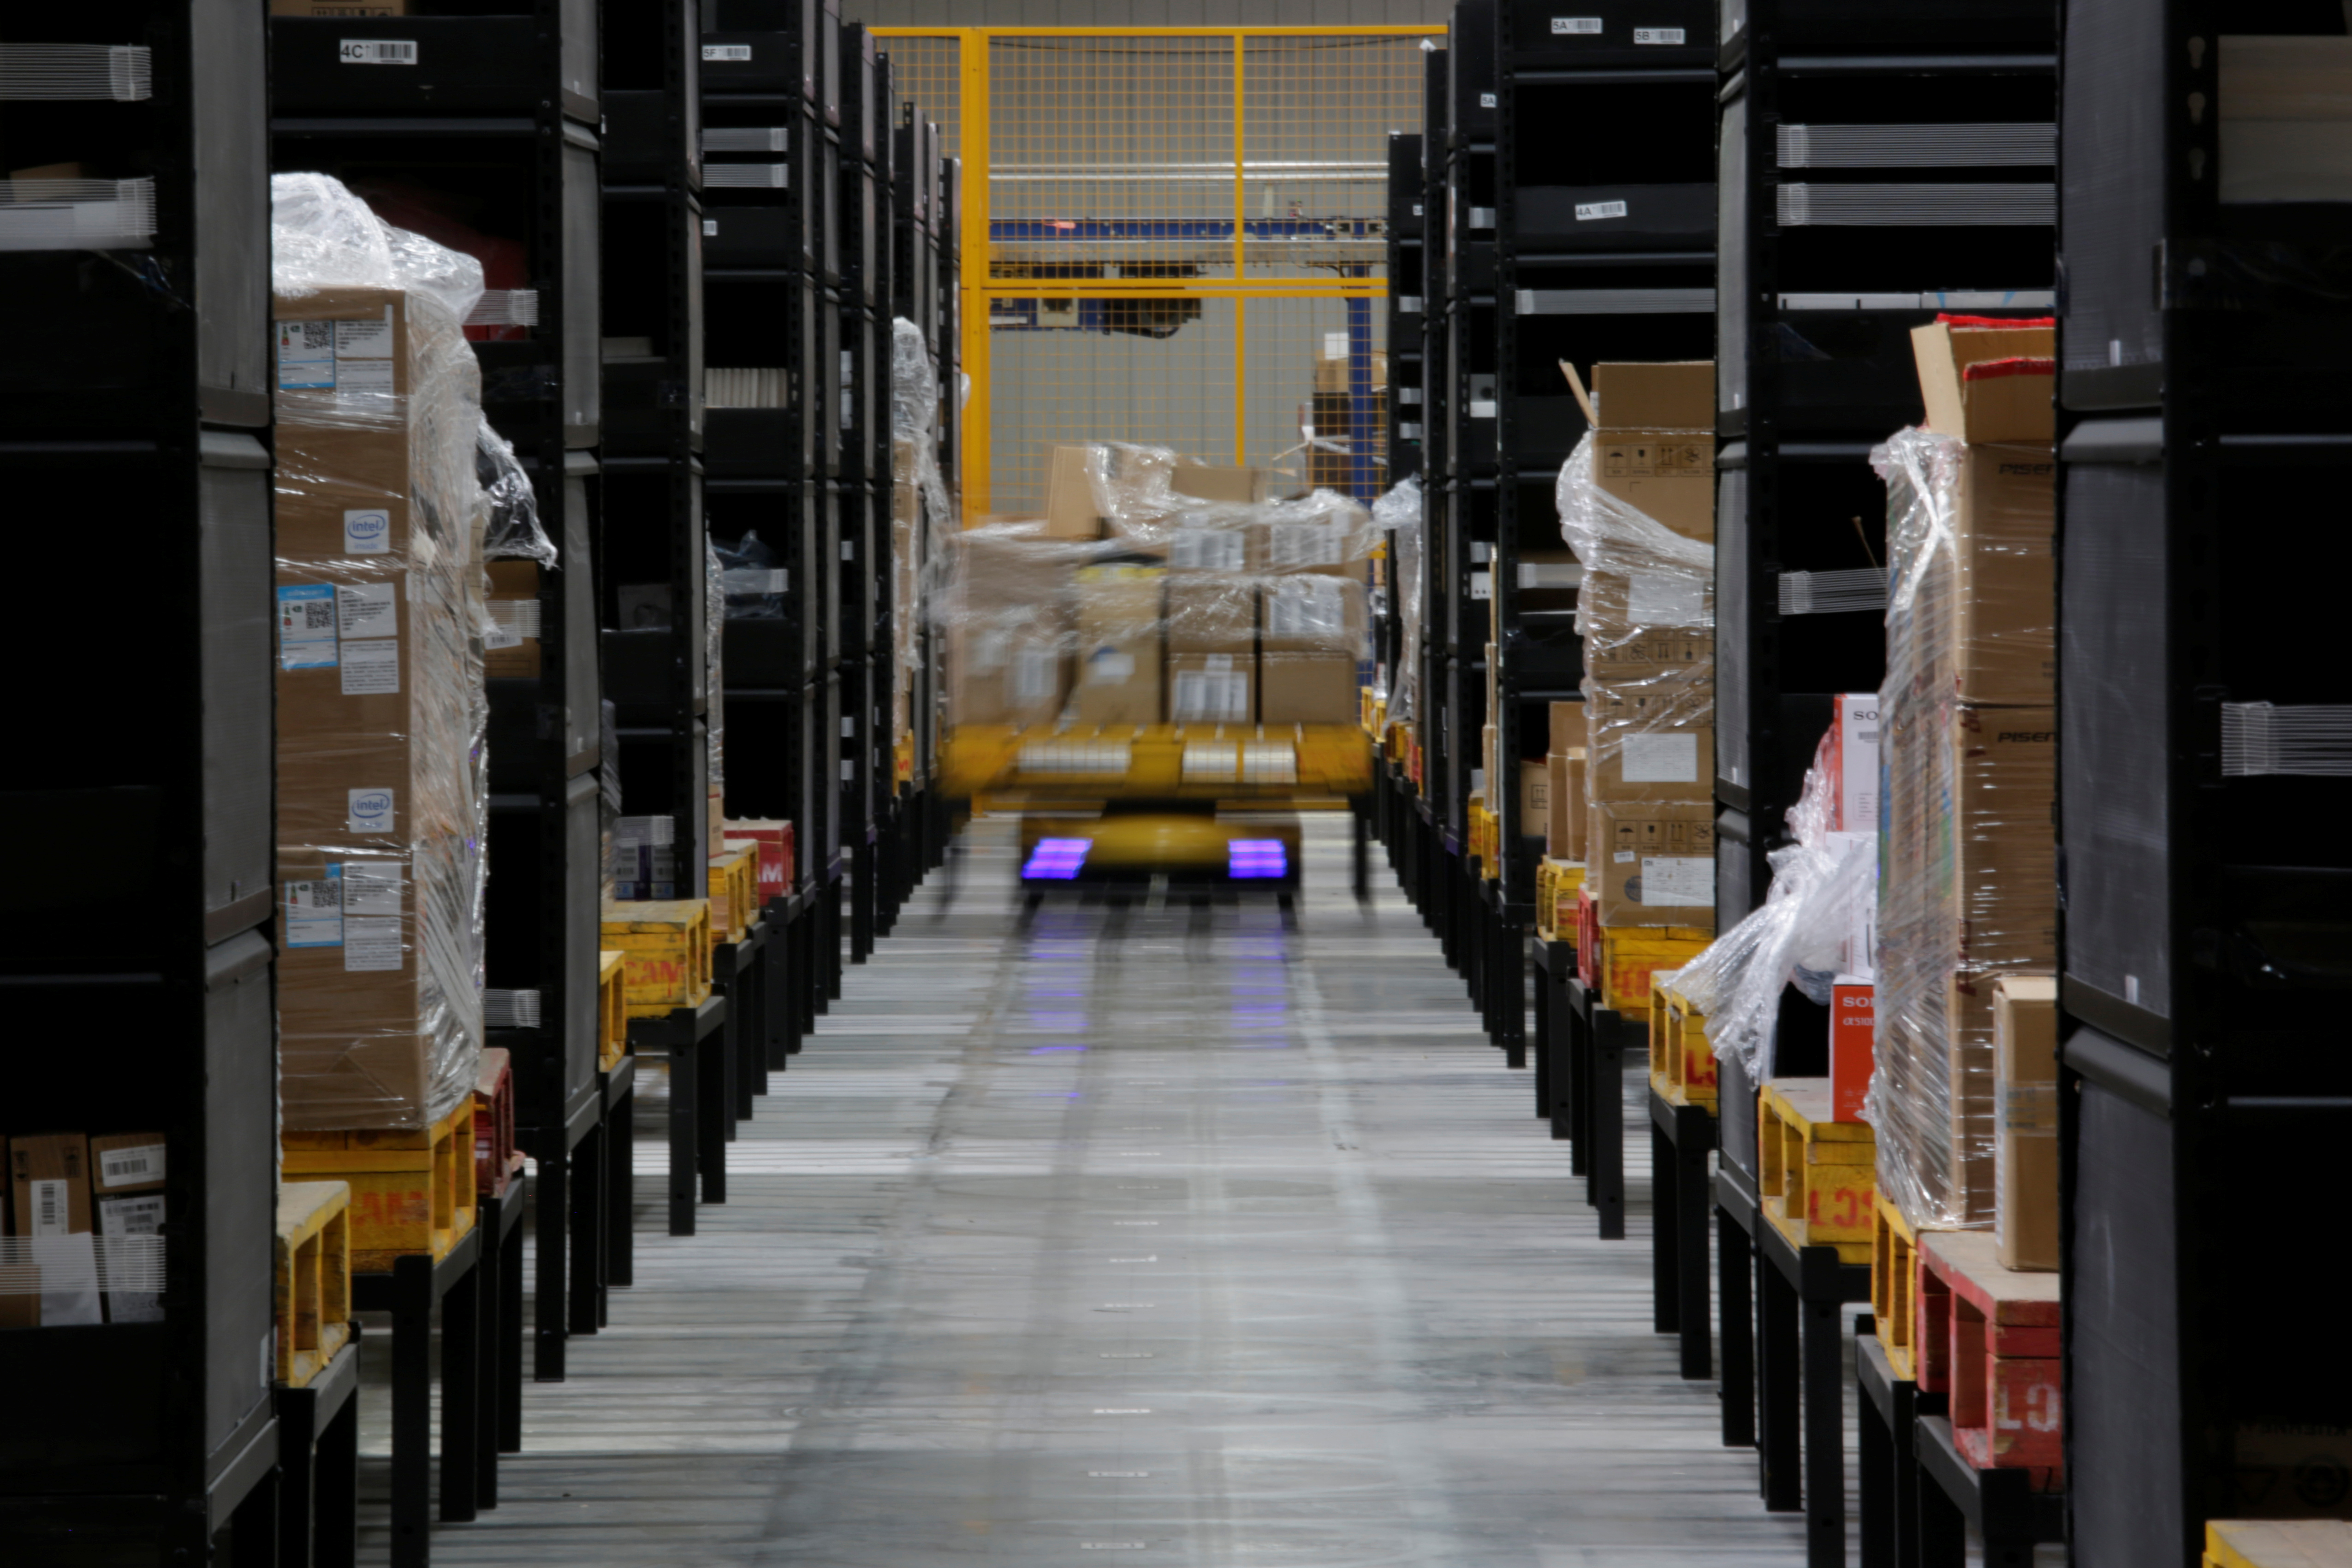 A robot moves goods through stocking shelves